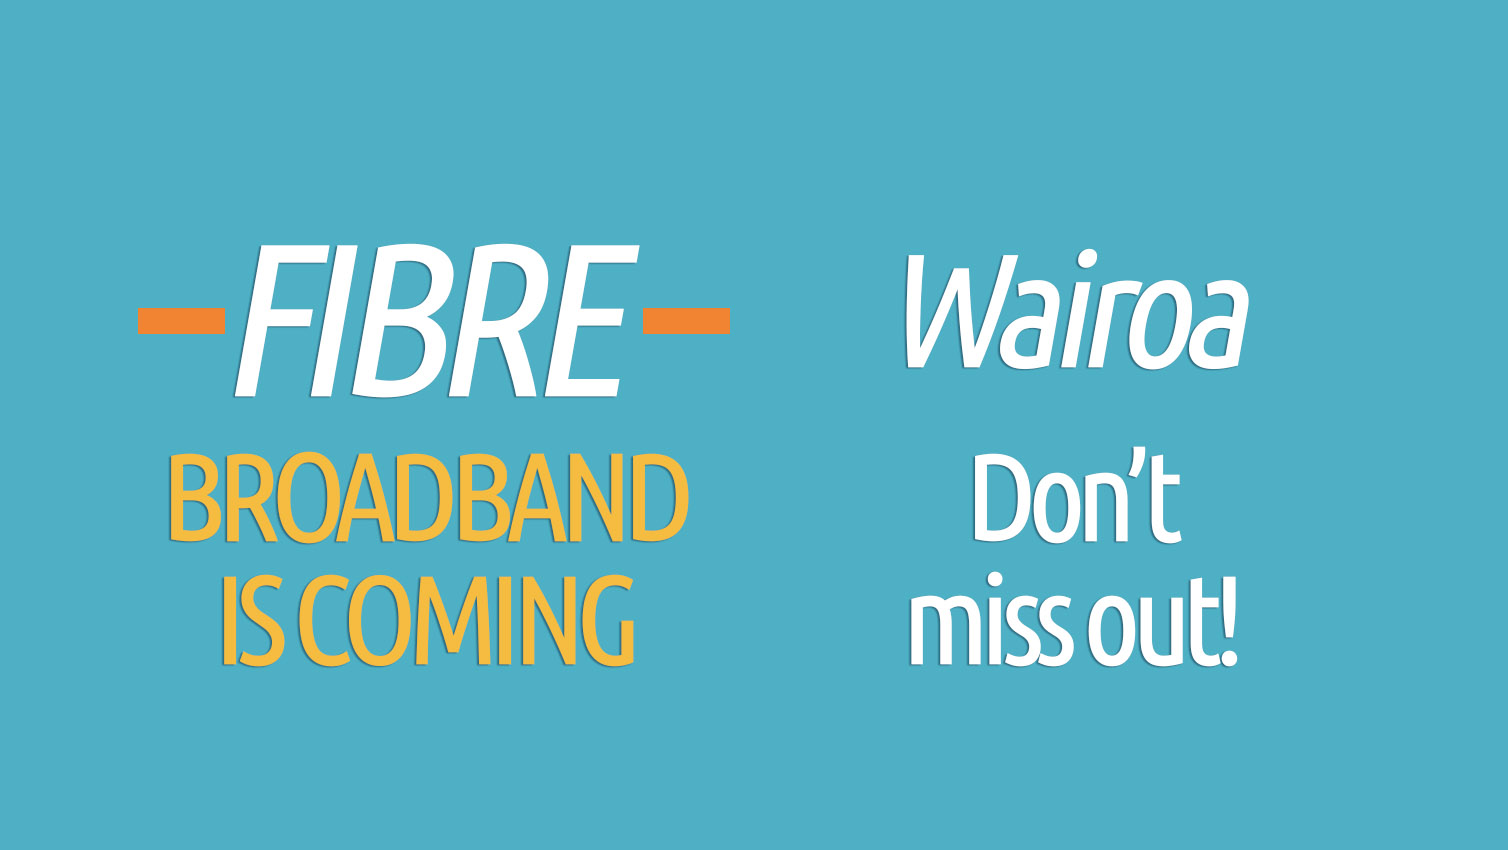 Ultra-fast fibre broadband rollout has started in Wairoa